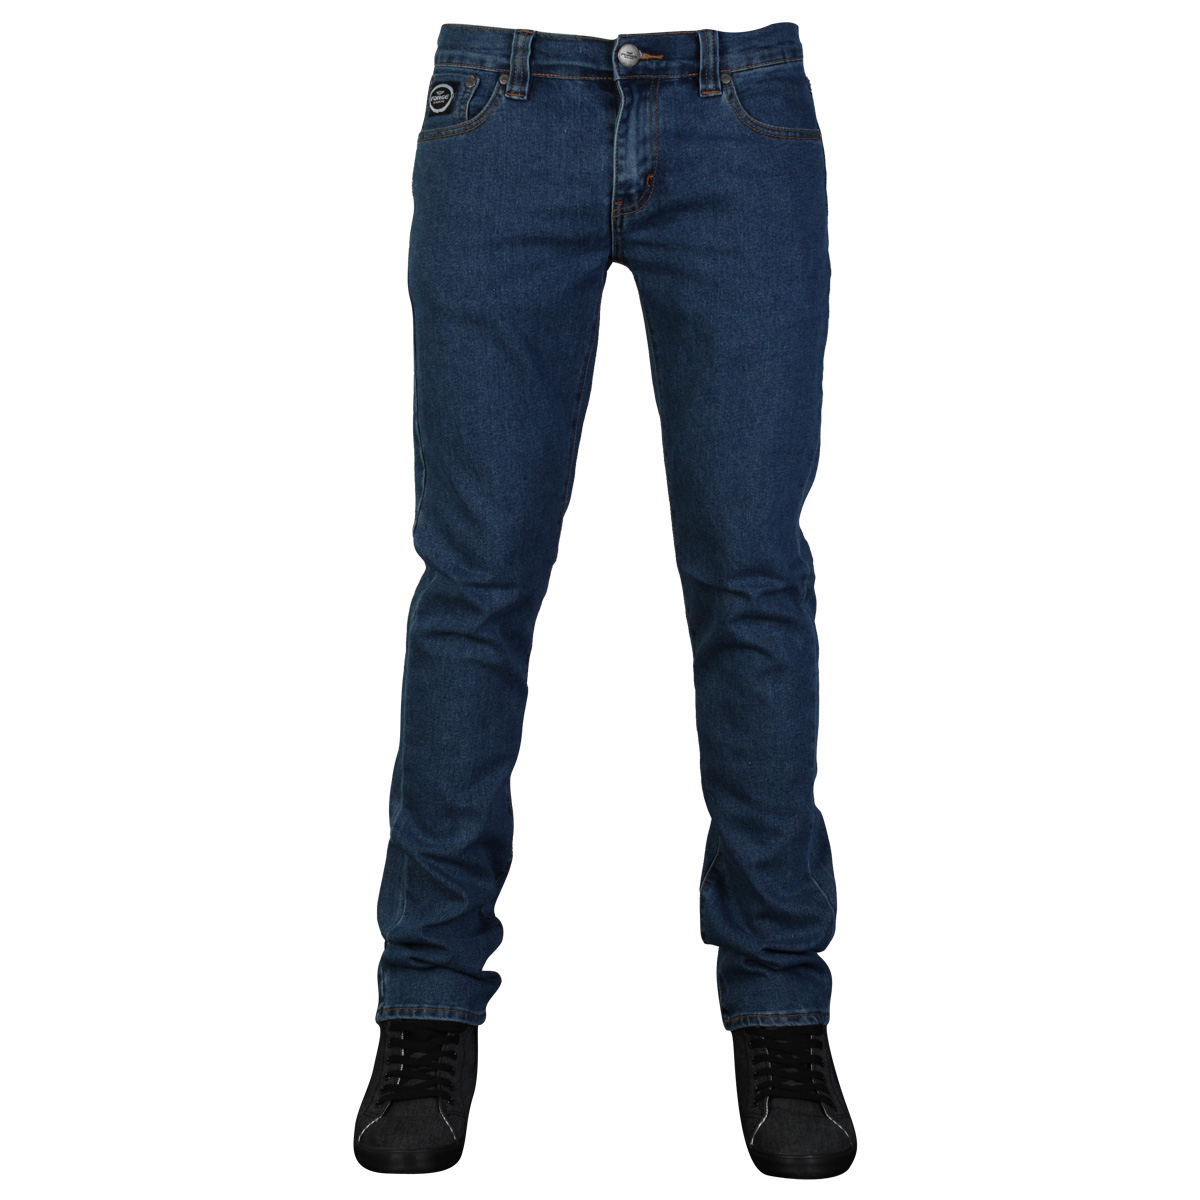 DD1-MENS-FORGE-BY-KAM-F103-SKINNY-FIT-STRETCH-DENIM-JEANS-ALL-WAIST-LEG-SIZES